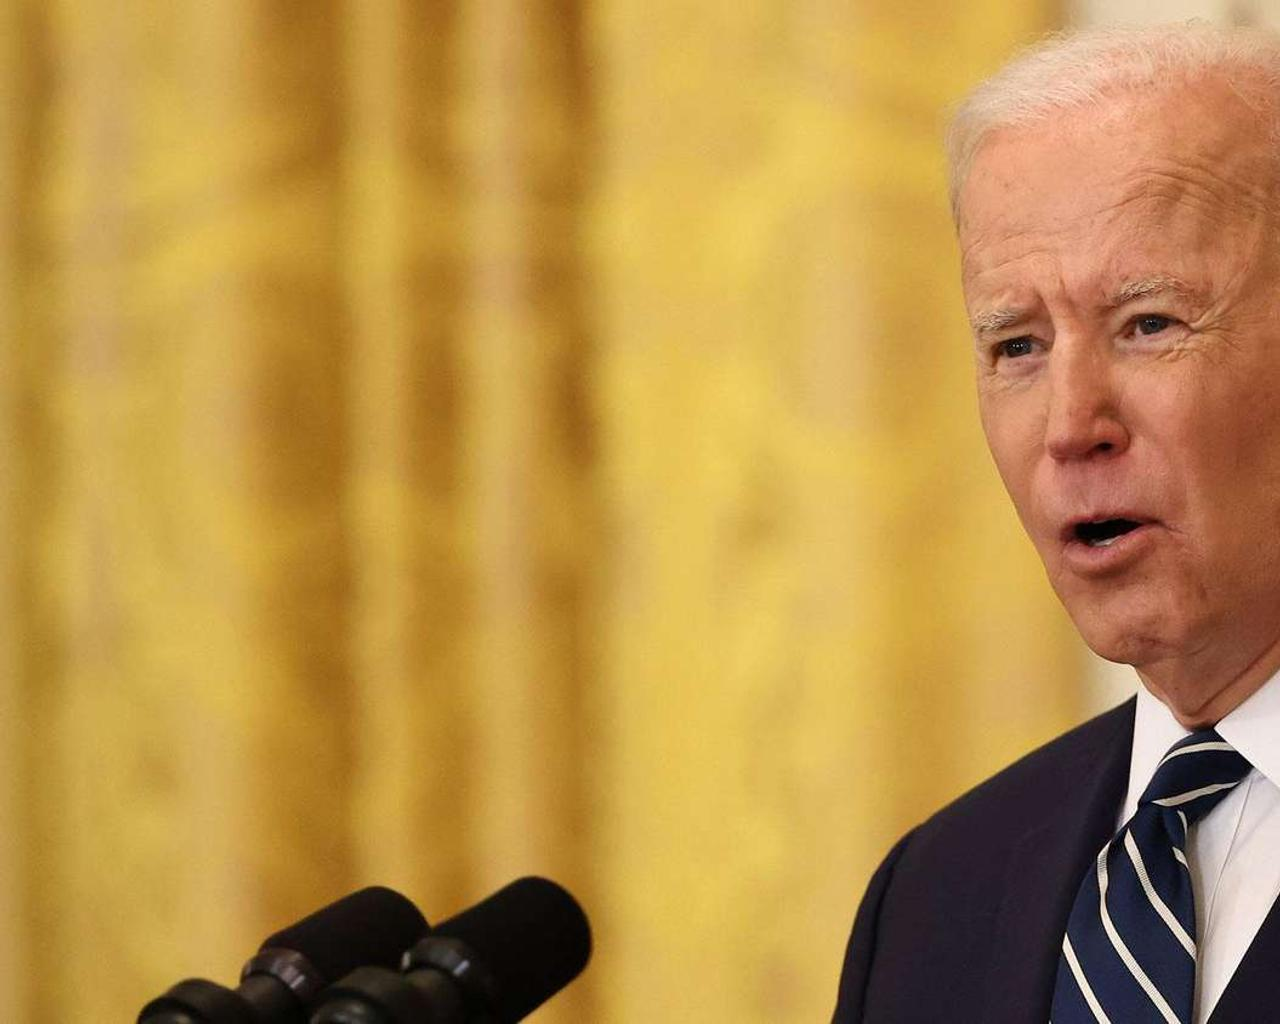 Biden Announces New Vaccine Goal: 200 Million Shots in 100 Days